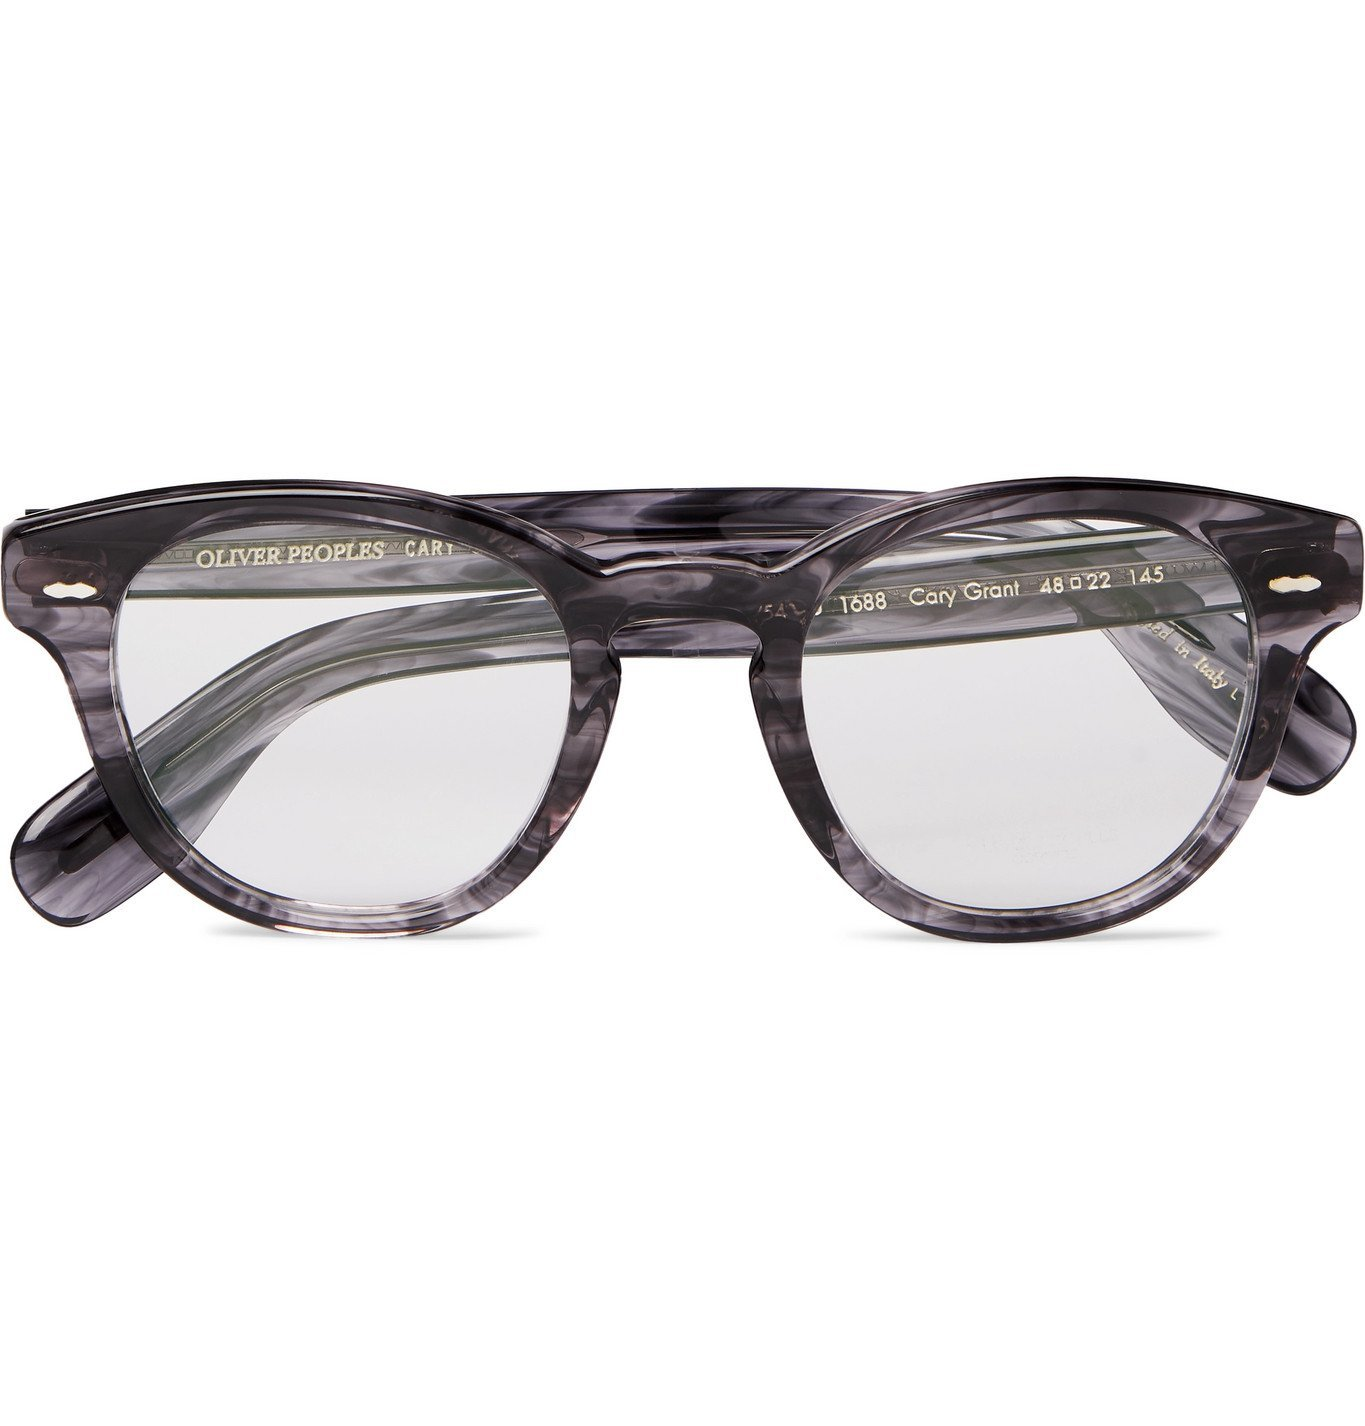 Photo: OLIVER PEOPLES - Cary Grant Round-Frame Acetate Optical Glasses - Blue